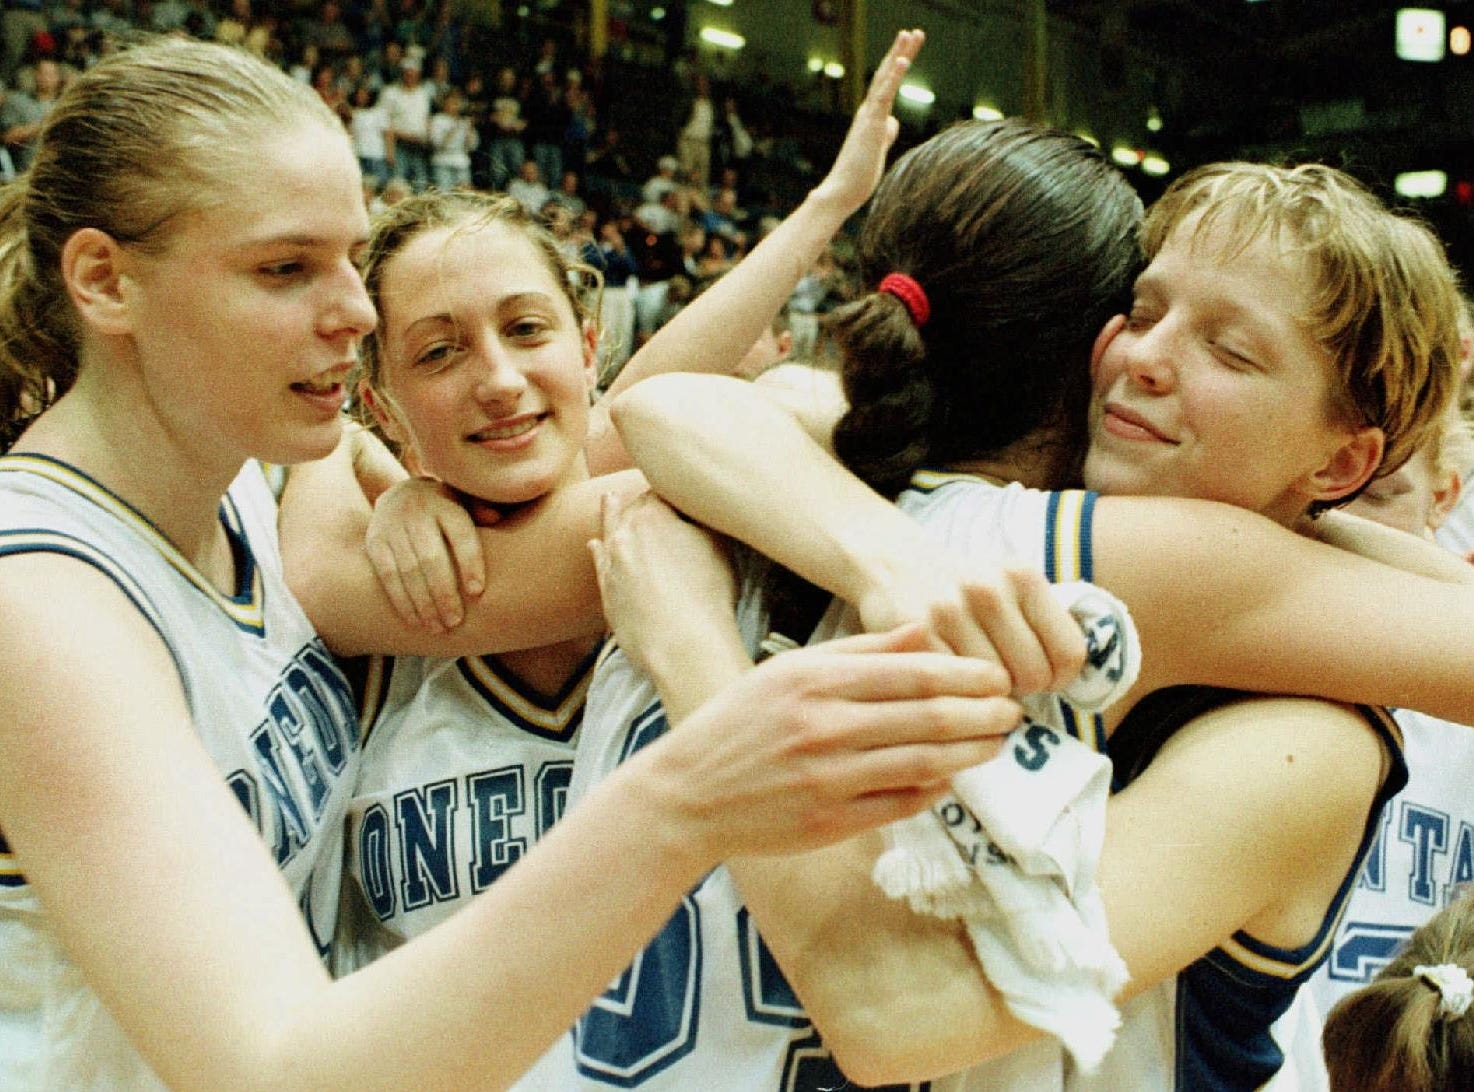 Oneonta's girl's team celebrates their 60-40 win over St. Domonic of Oyster Bay in the Federation Girls Class B Championship game Saturday, March 28, 1998, in Glens Falls, N.Y. The players are, from left: Stacy Knapp; Krissy Zeh; Tiffany Hurley; and Karyn Piece.